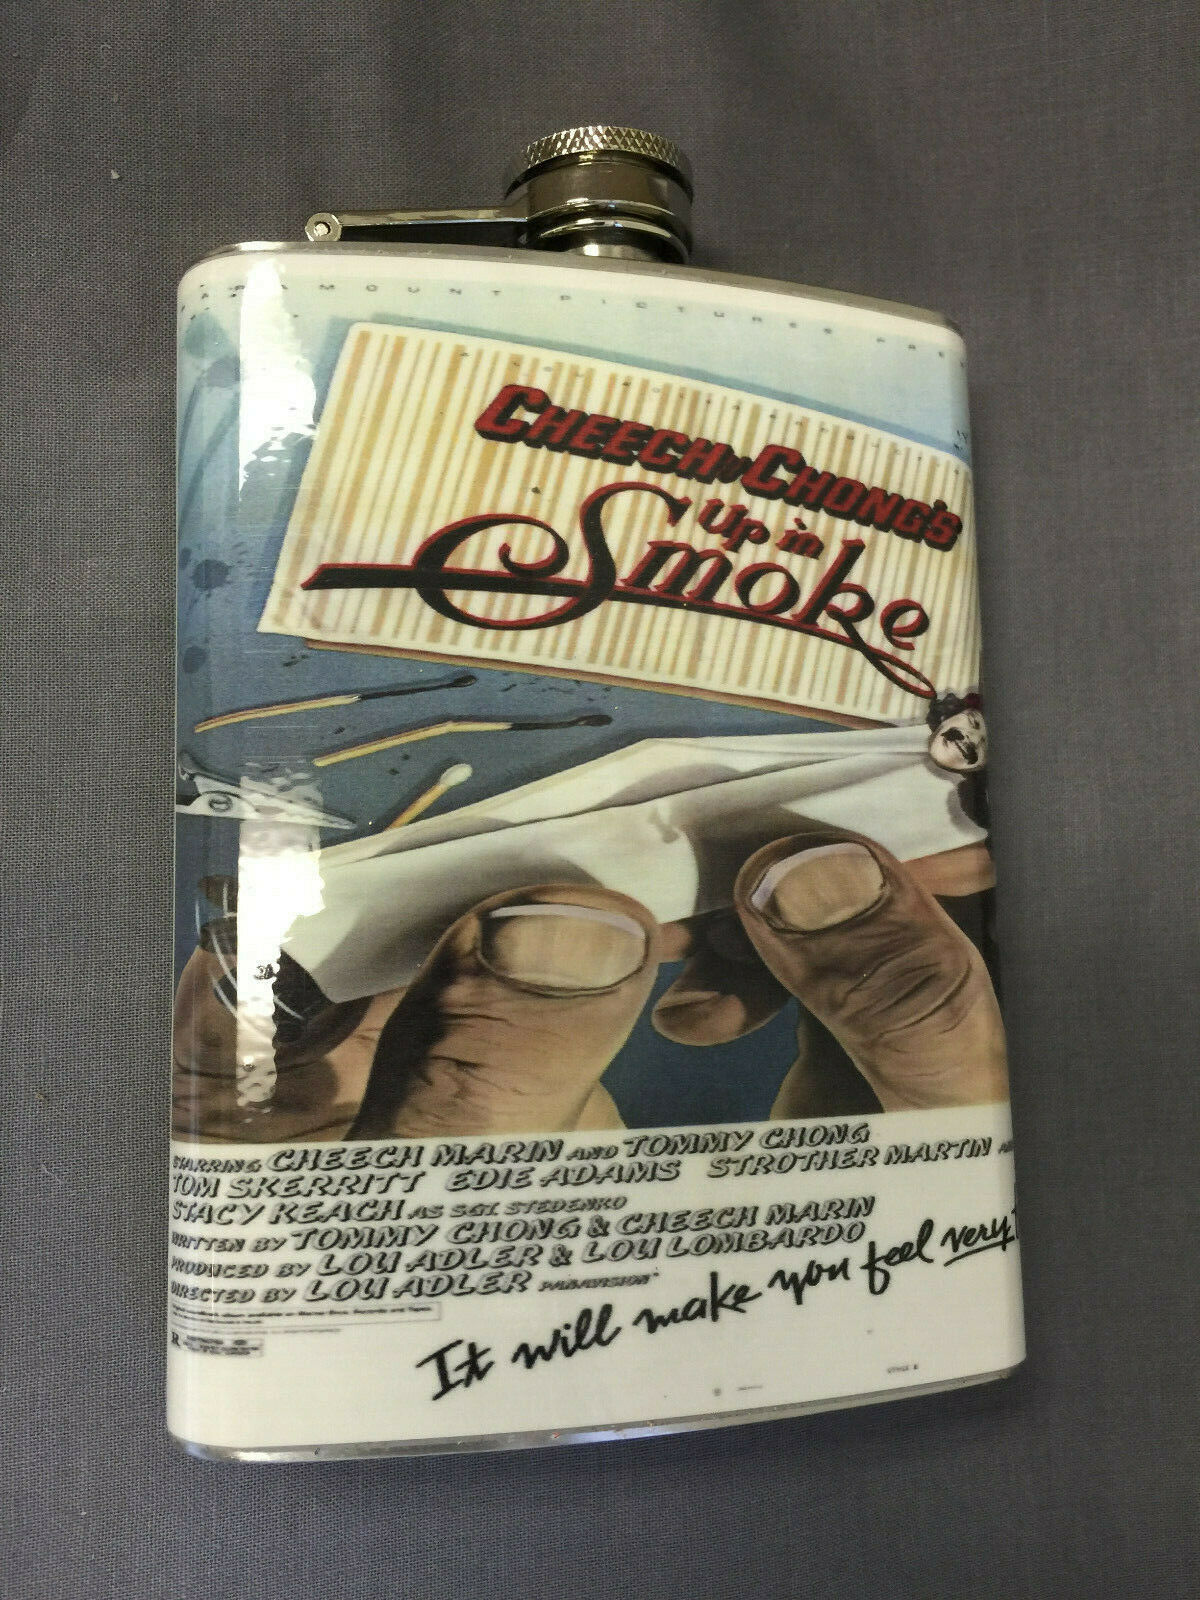 Cheech & Chong Smoke Flask 8oz Stainless Steel Drinking Whiskey Clearance item